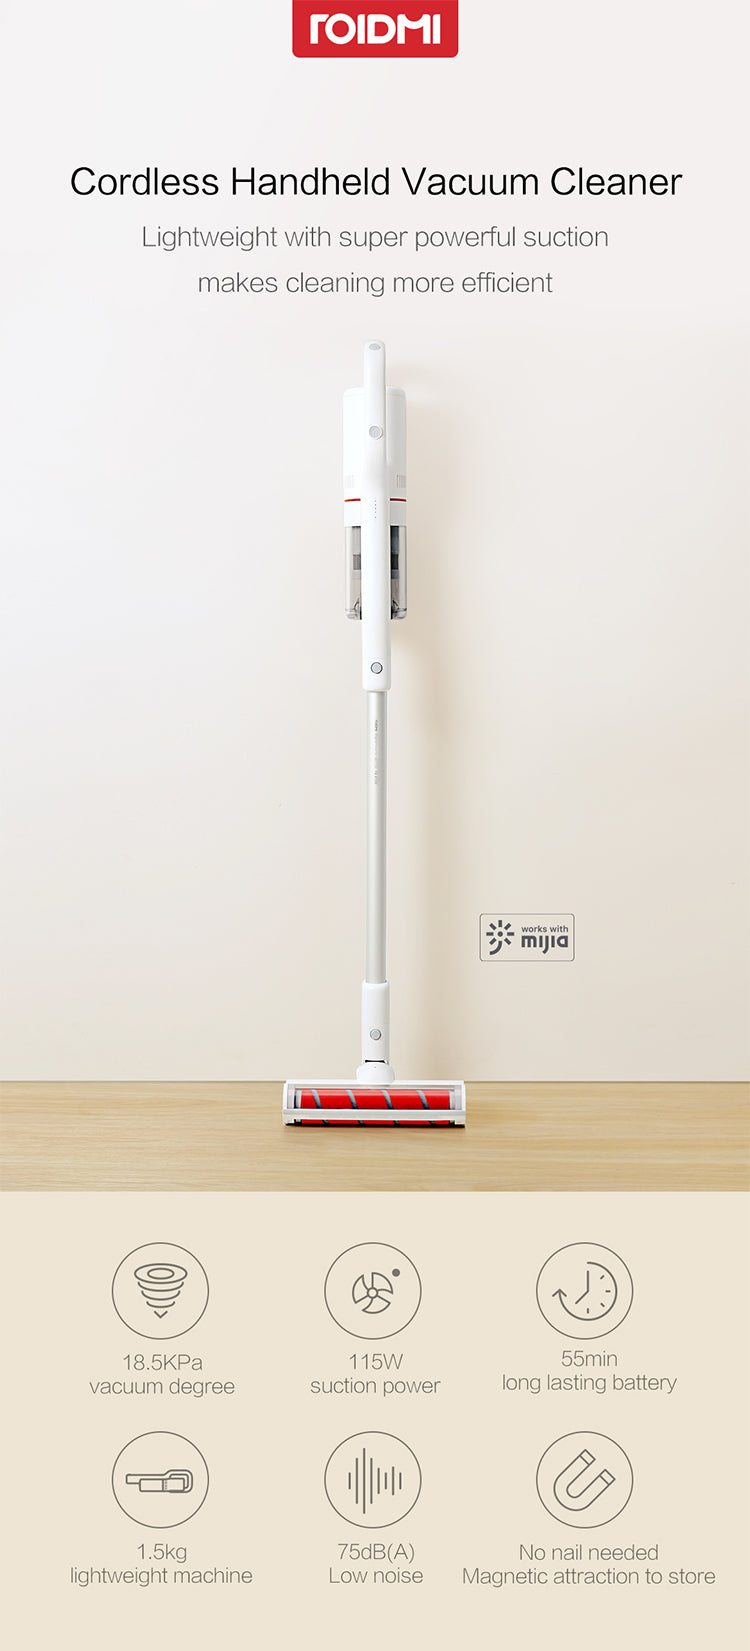 Roidmi wireless vacuum cleaner in india